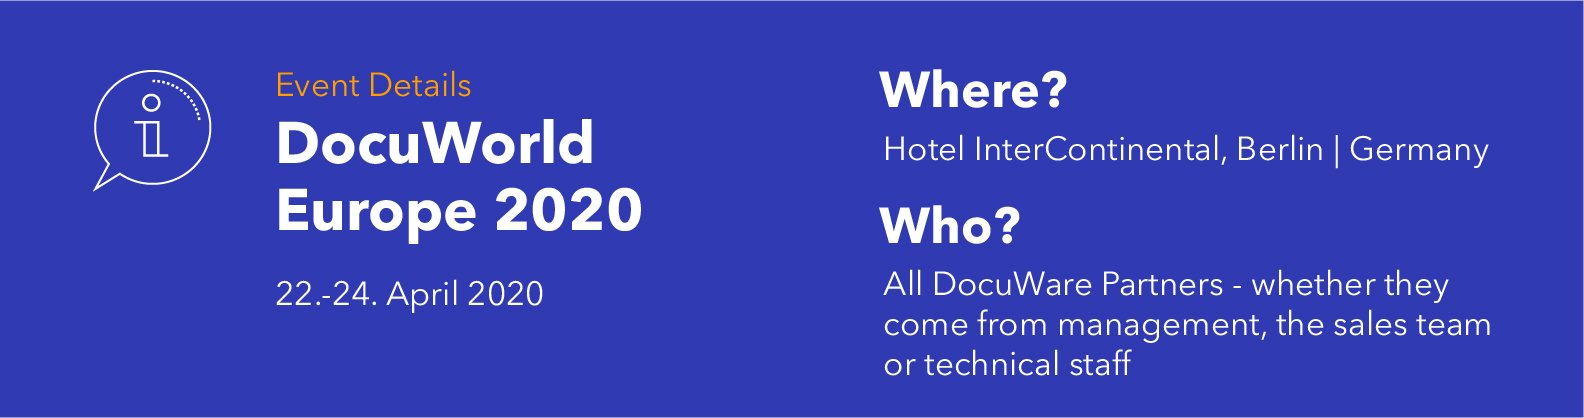 DocuWorld Europe 2020: Event Details